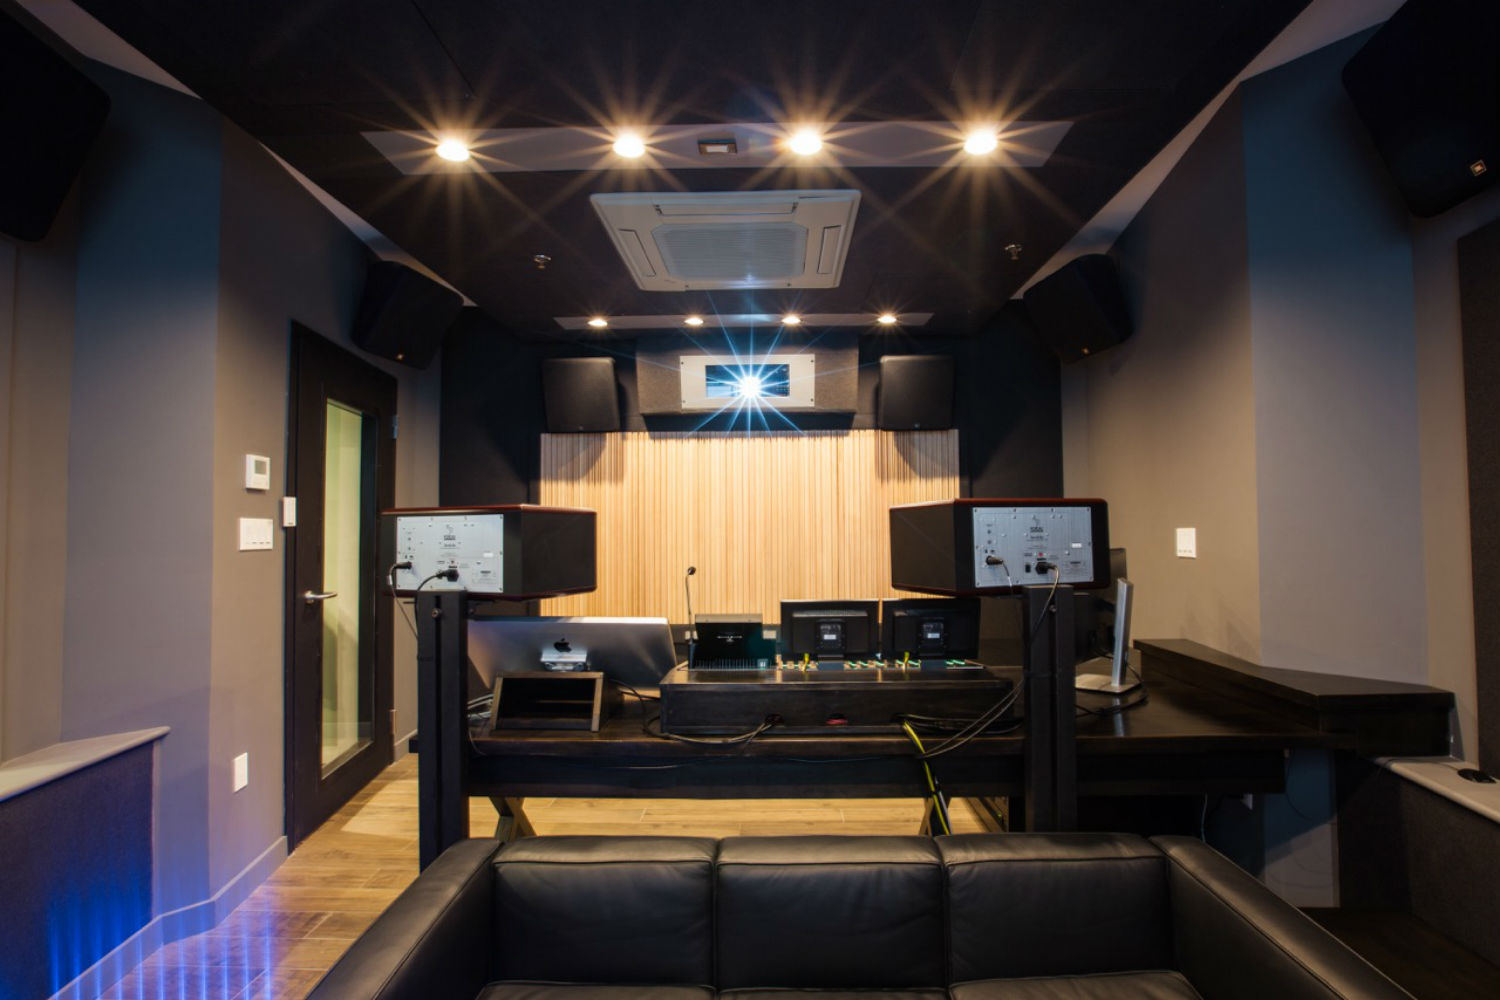 Blue Table Post Video/Audio Post Production Mixing Suite with Dolby Atmos Audio Technology Rear View designed by WSDG